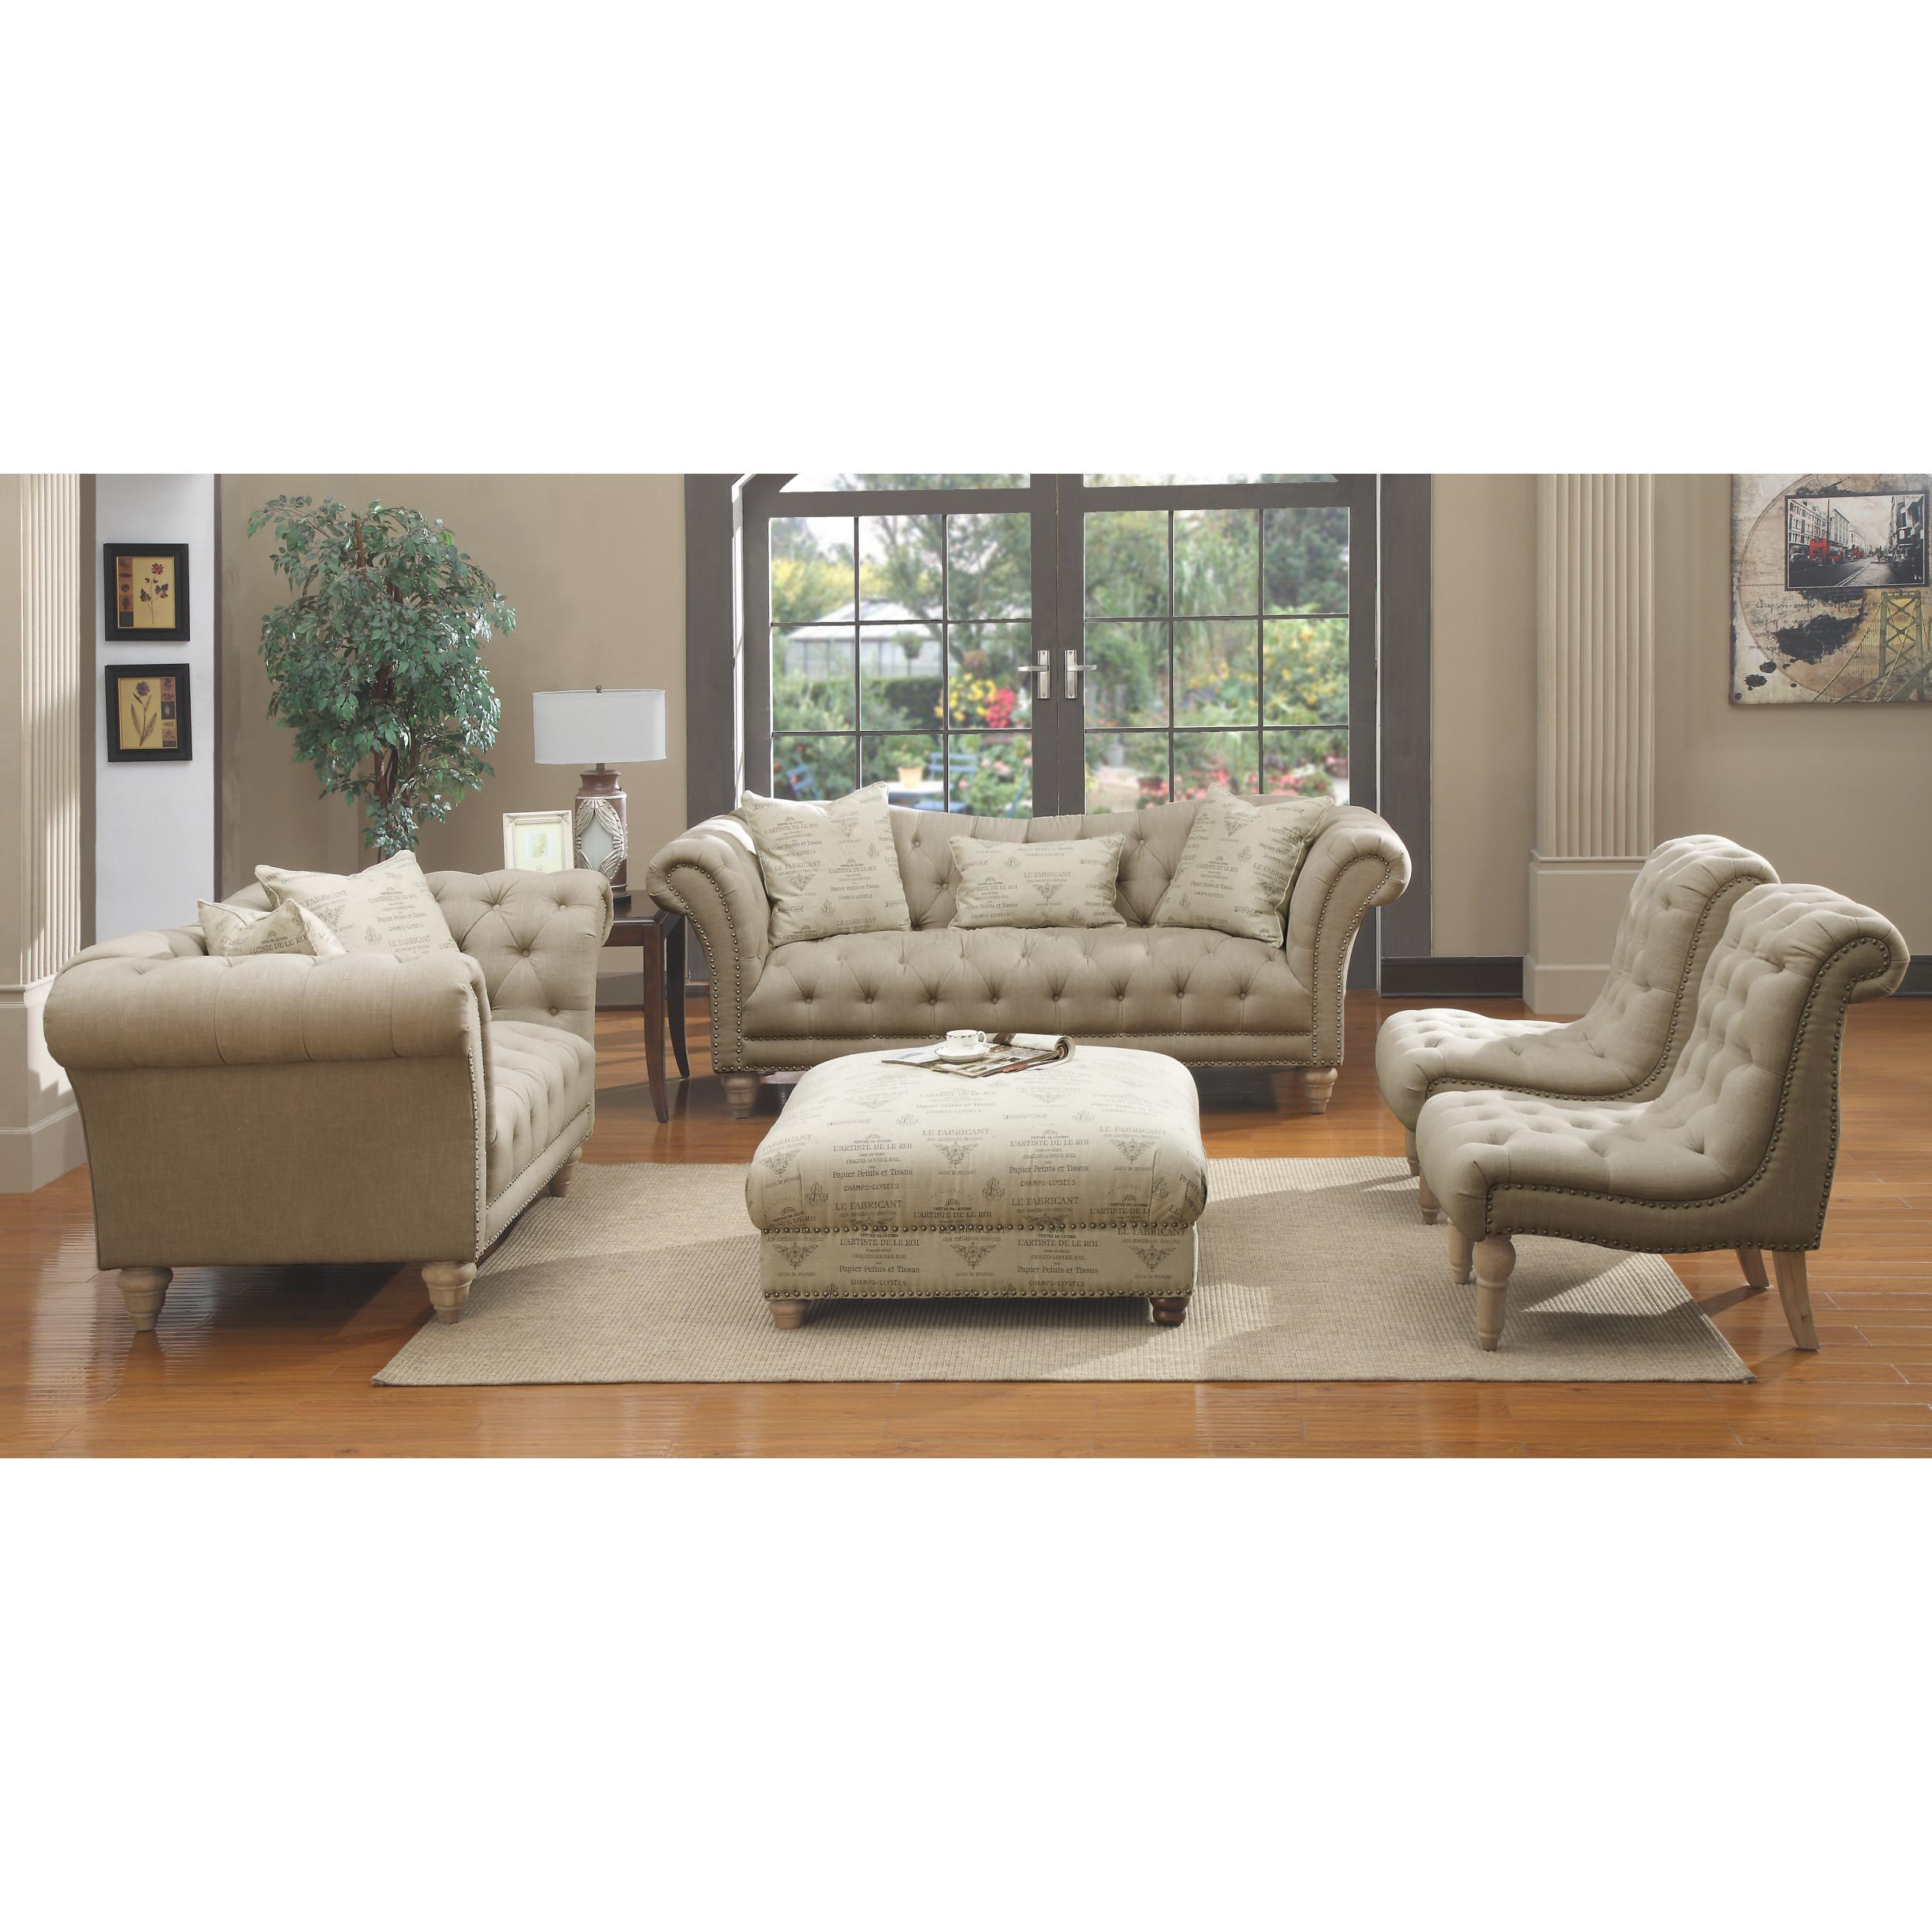 Emerald Home Hutton II Off White 5pc Living Room Set with ...